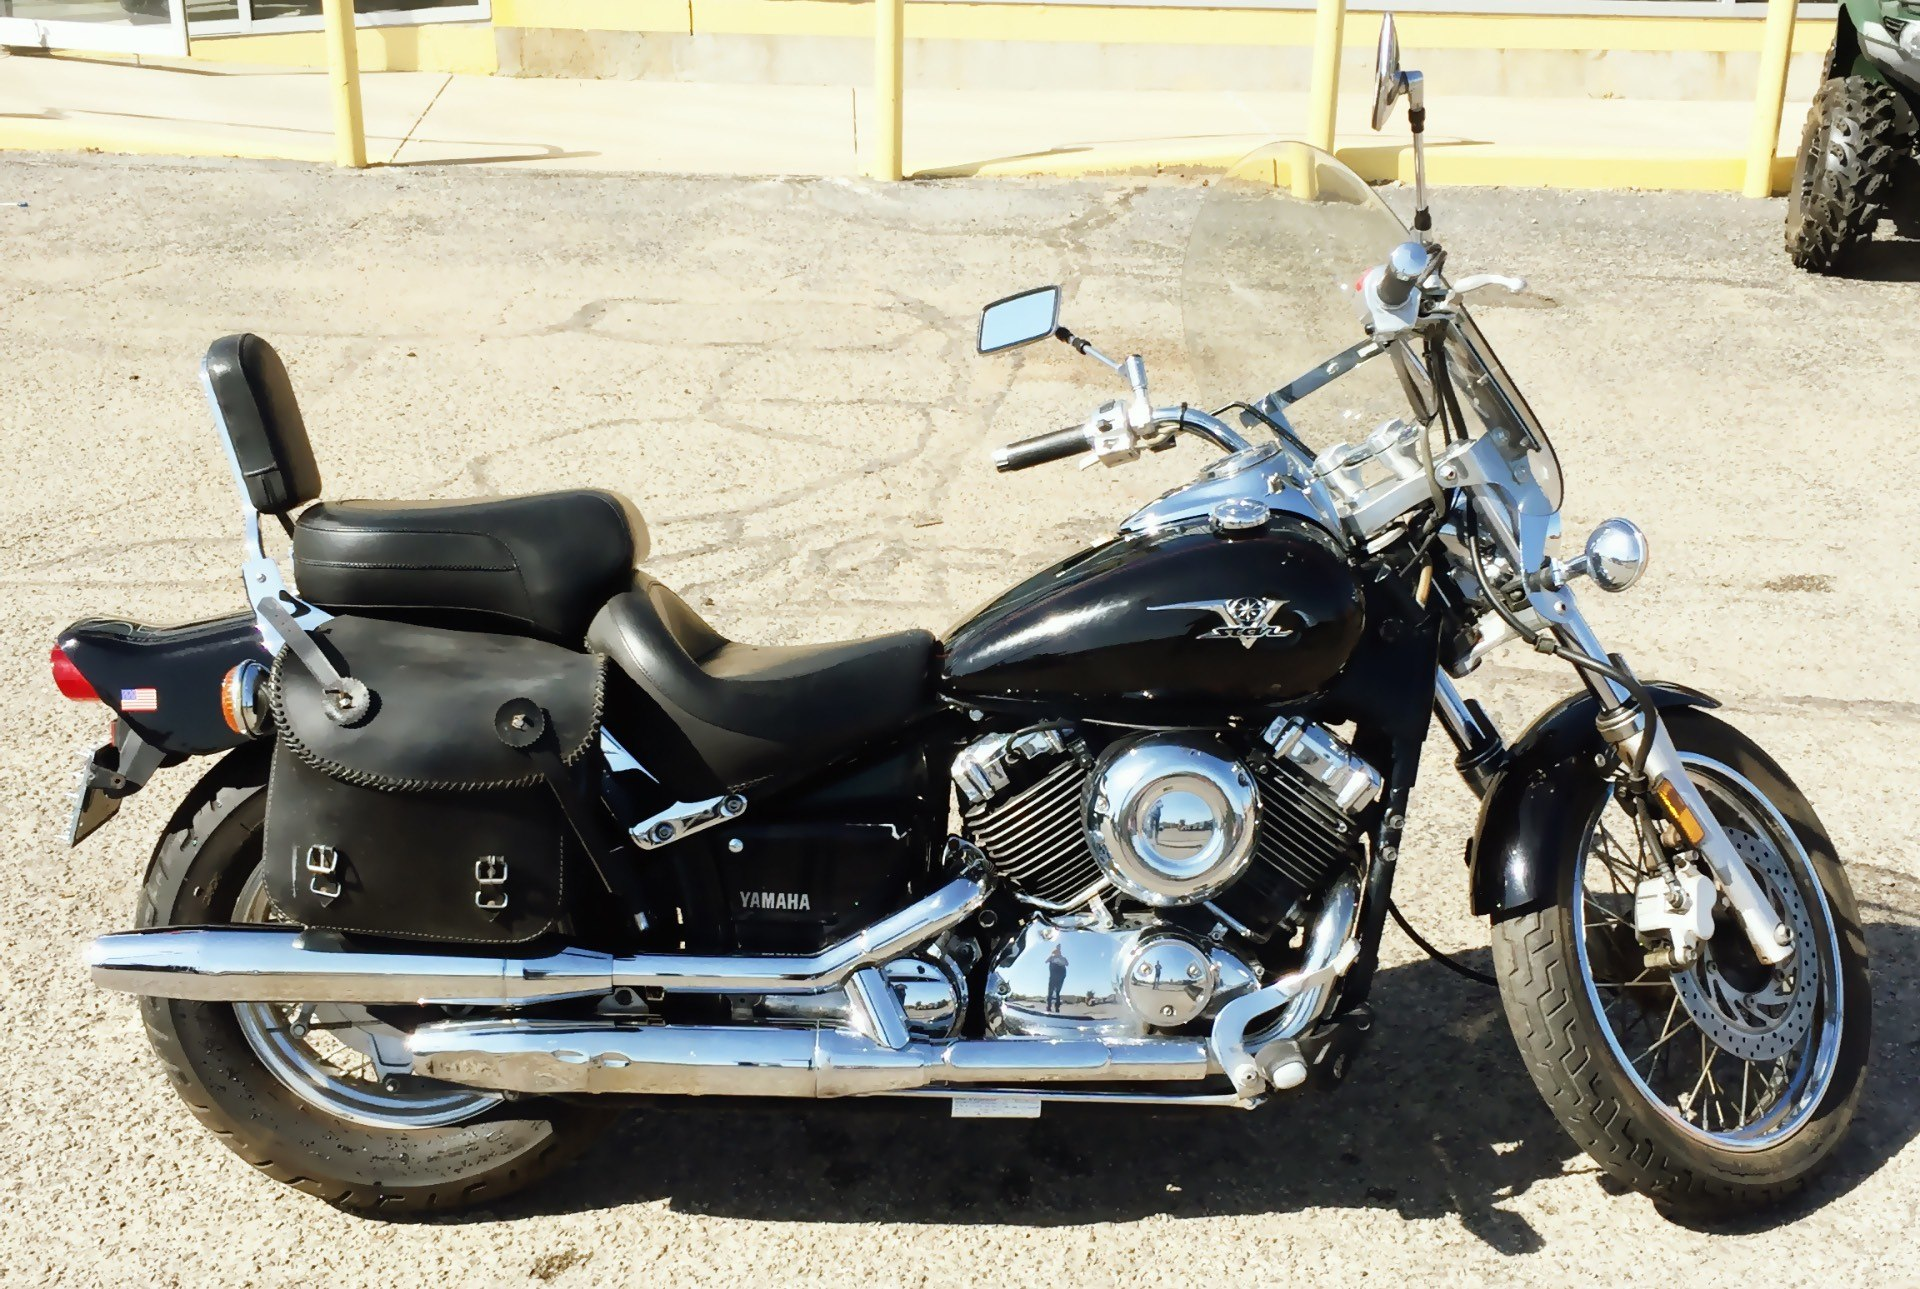 Used 2004 yamaha v star classic motorcycles in stillwater for Yamaha of stillwater